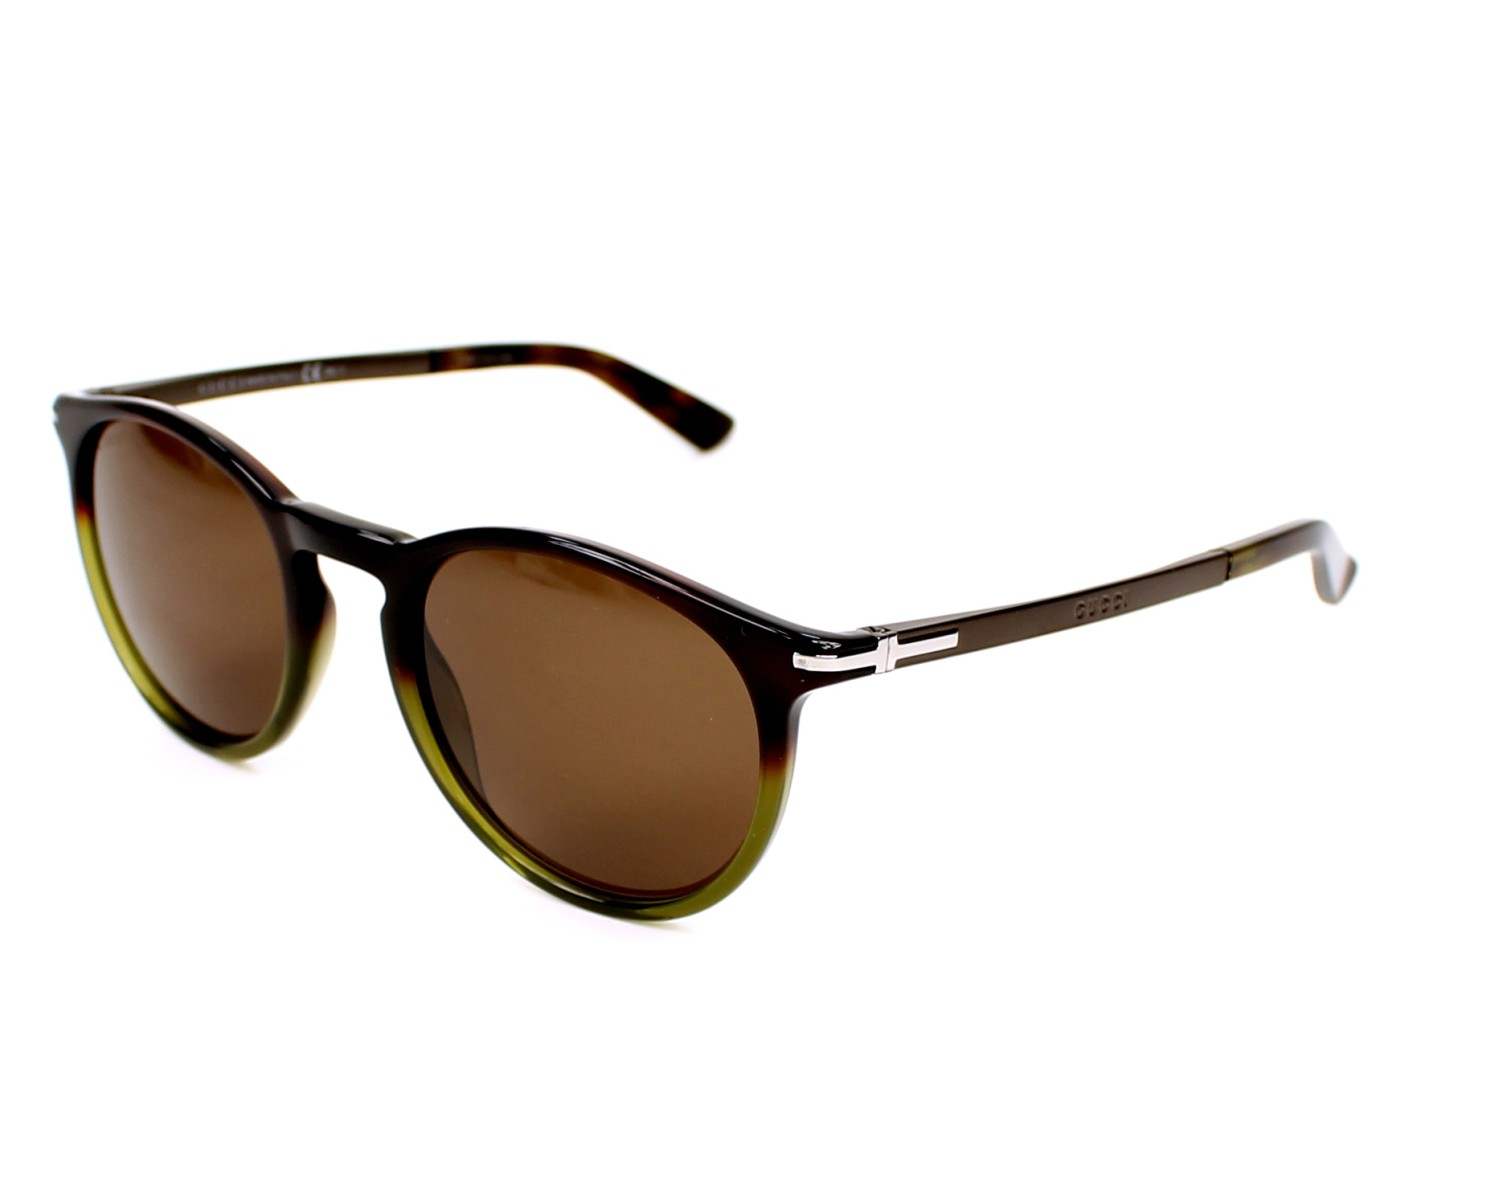 6627ee46c3b3b7 Ray Ban RX 5154 5749. Lunettes de soleil Gucci GG 1110 S M06A6 51 Visionet